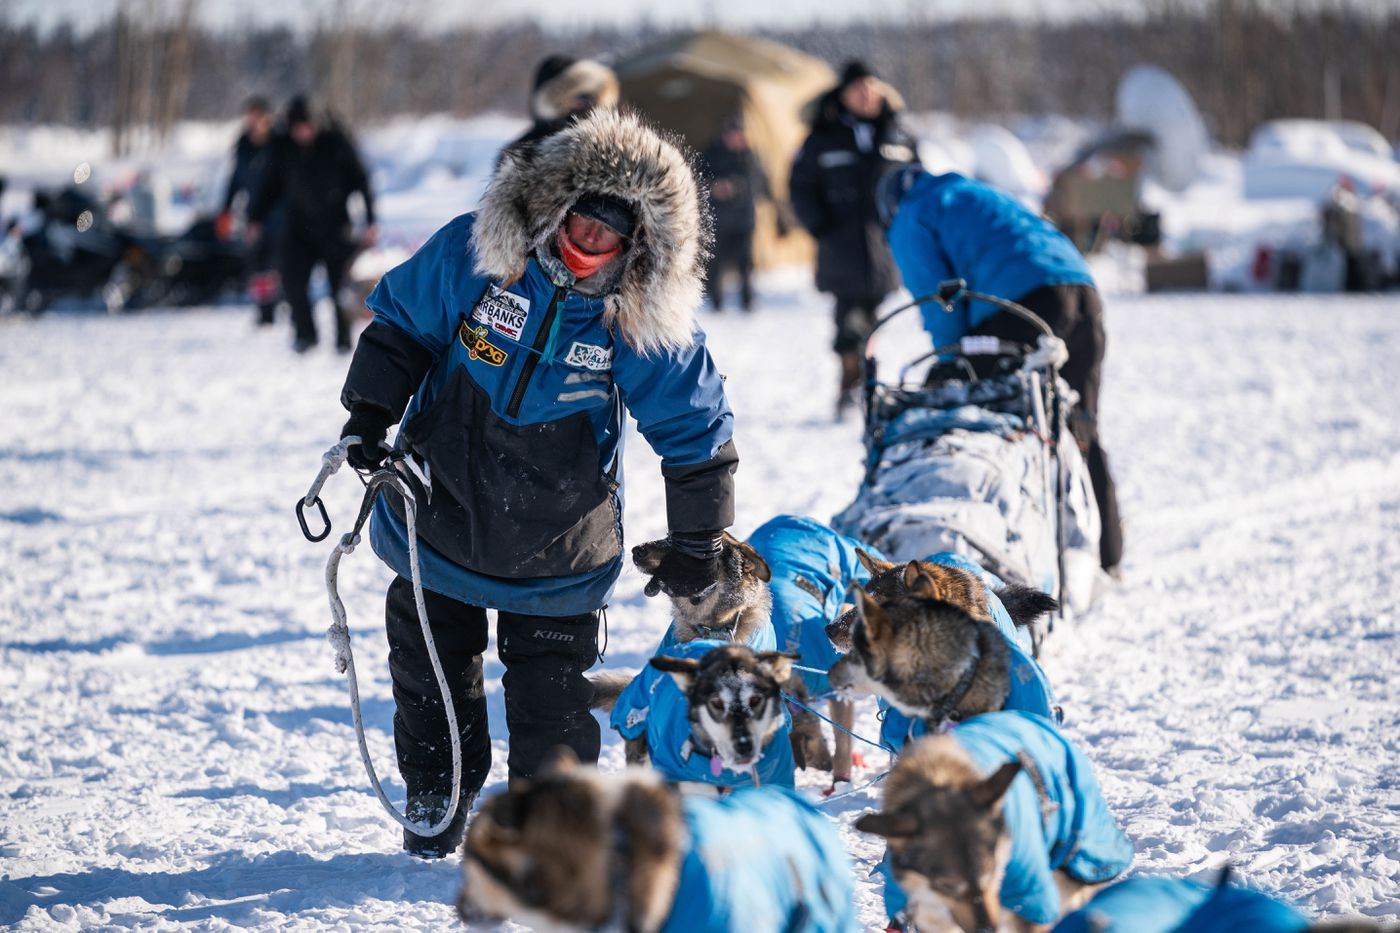 Paige Drobny secures her team after arriving in Nikolai on Tuesday, March 10, 2020 during the Iditarod Trail Sled Dog Race. (Loren Holmes / ADN)